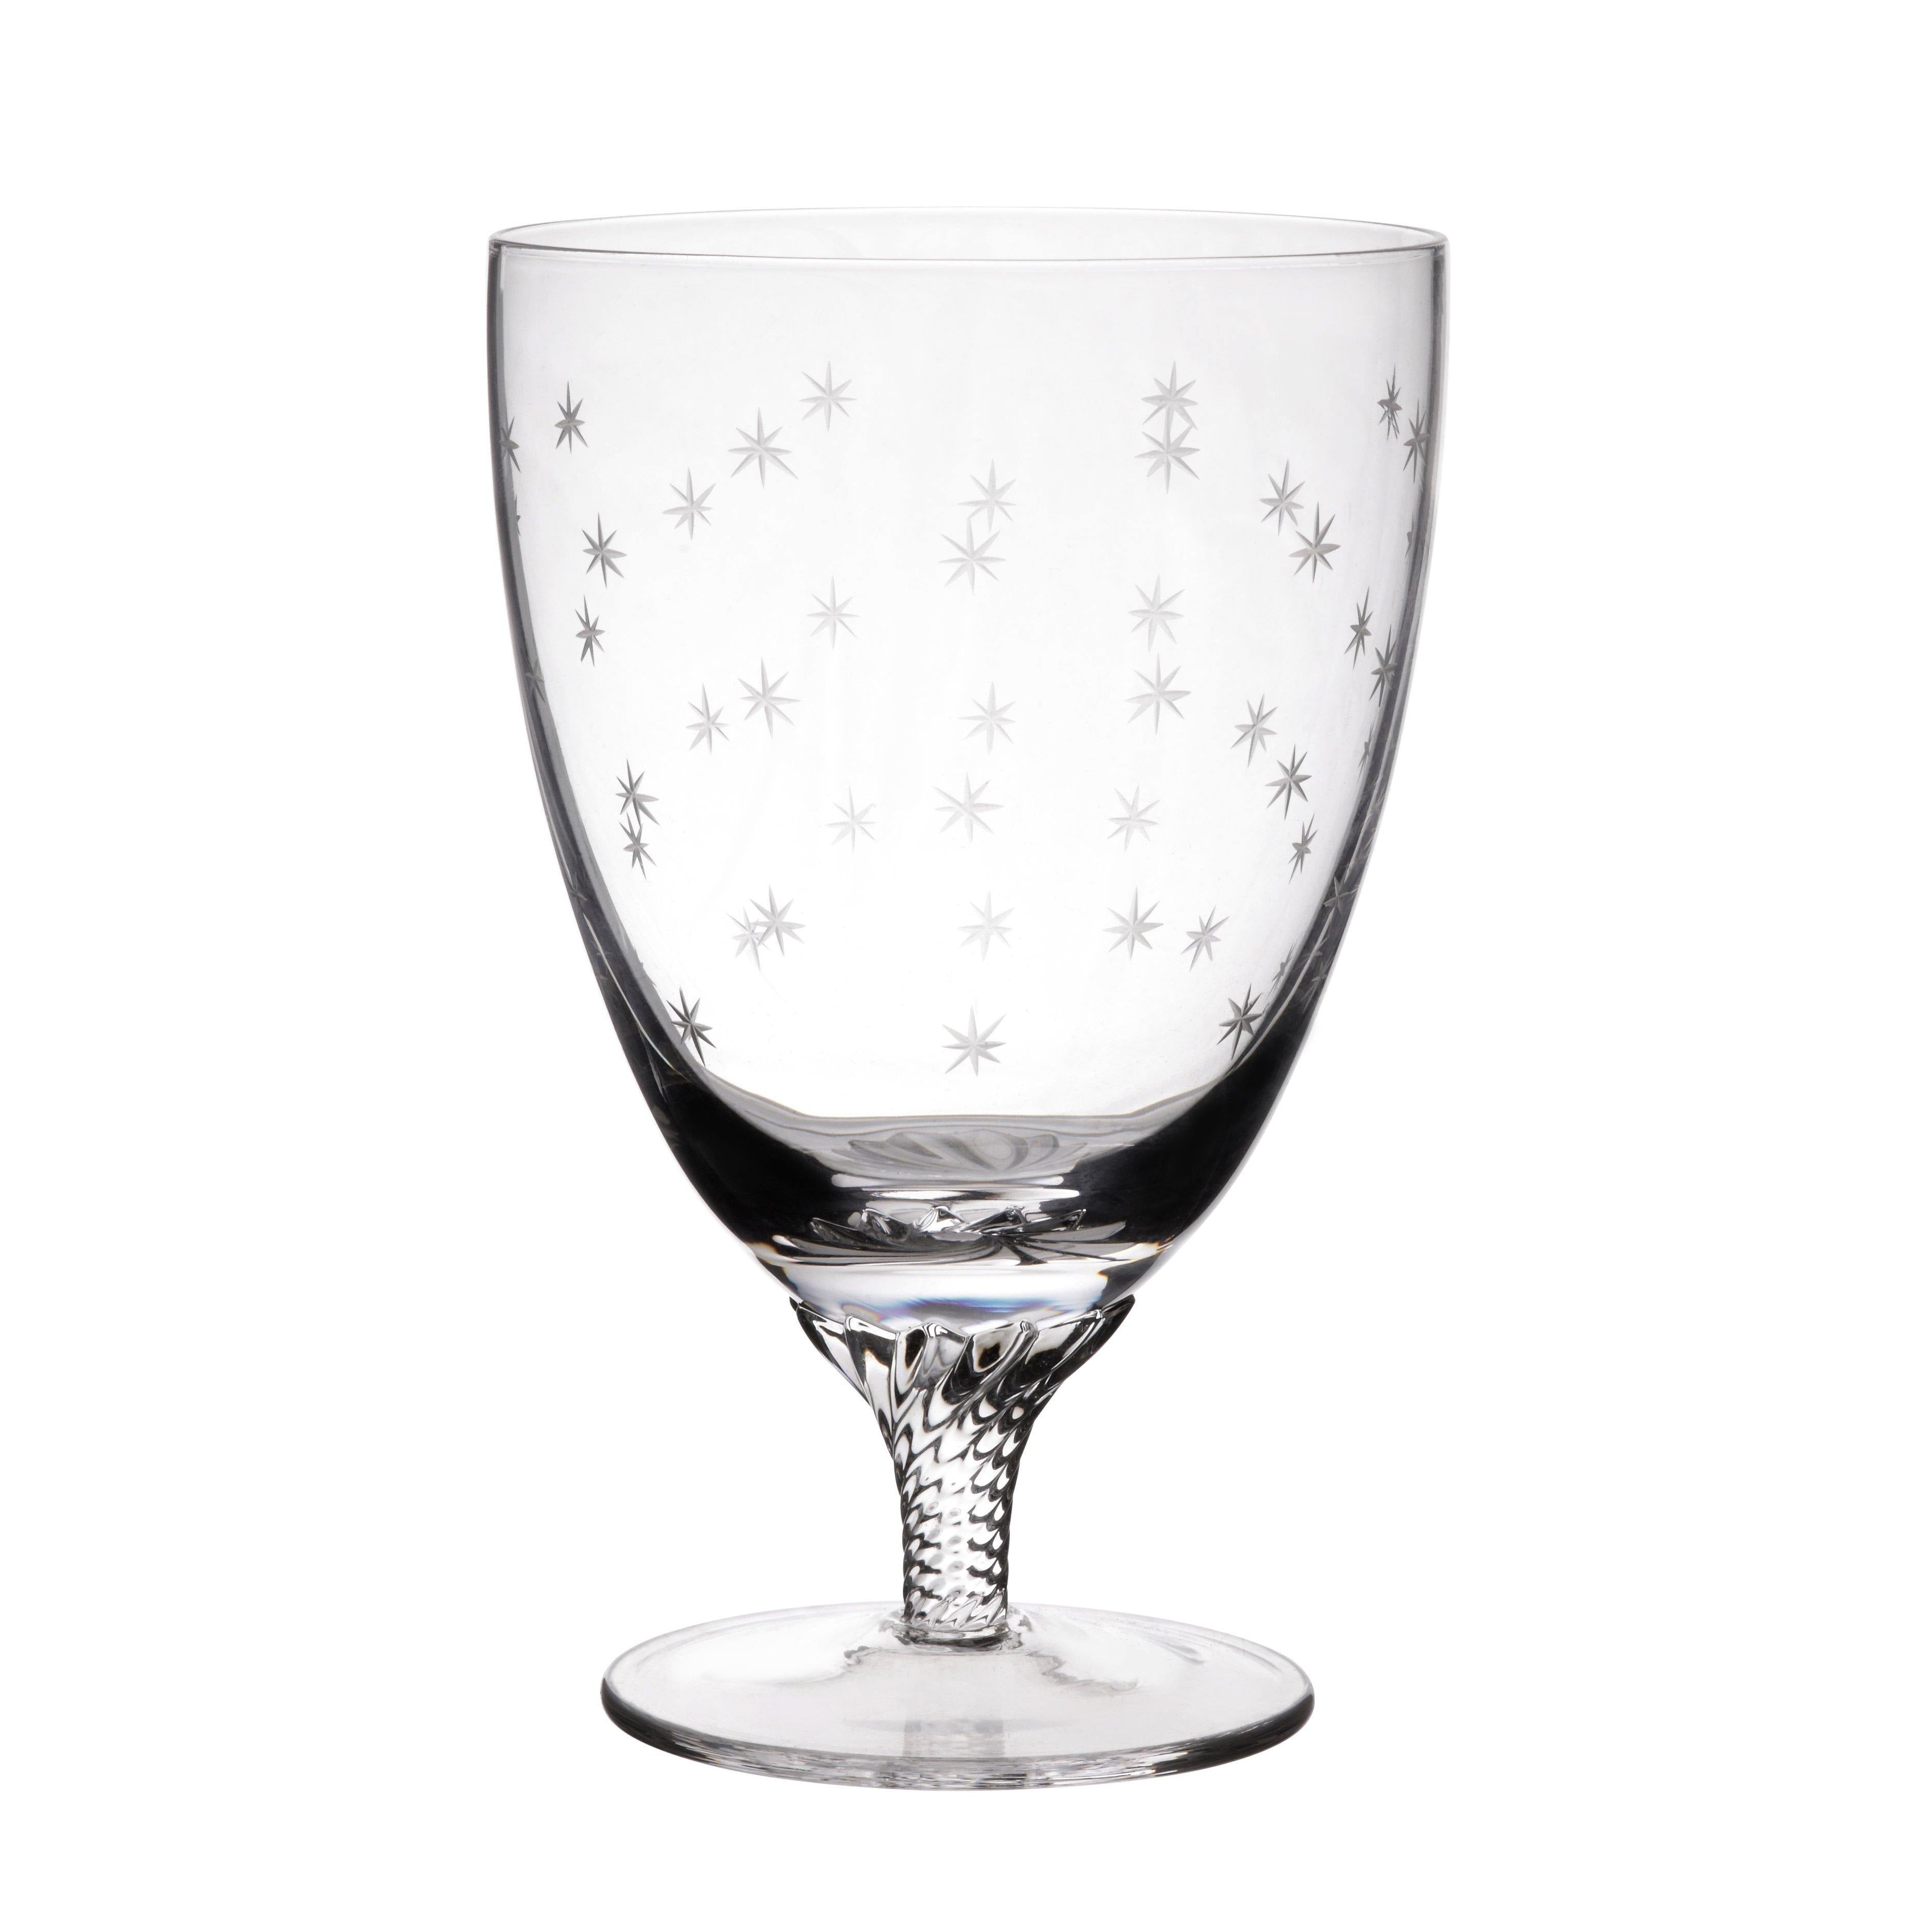 Bistro Glasses with Stars - Set of 6